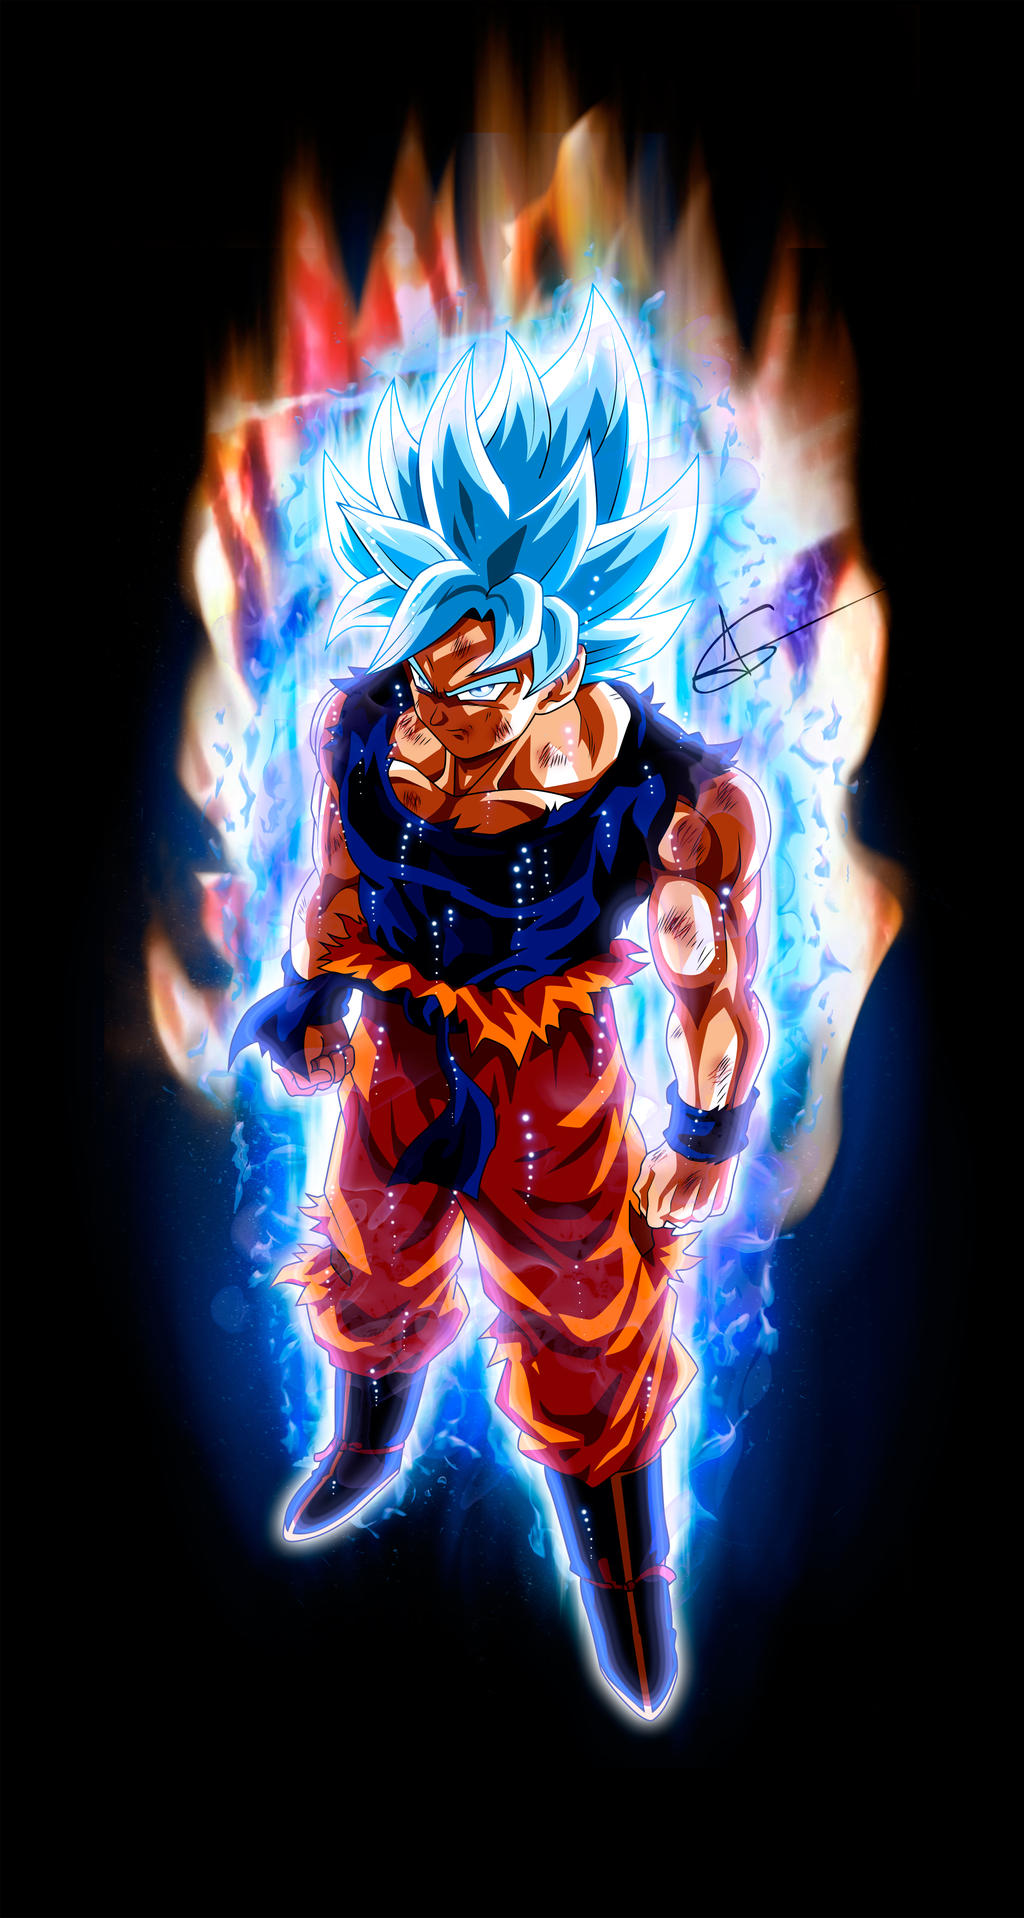 1024x1918px goku ultra instinct mastered wallpapers - Goku ultra instinct mastered wallpaper ...